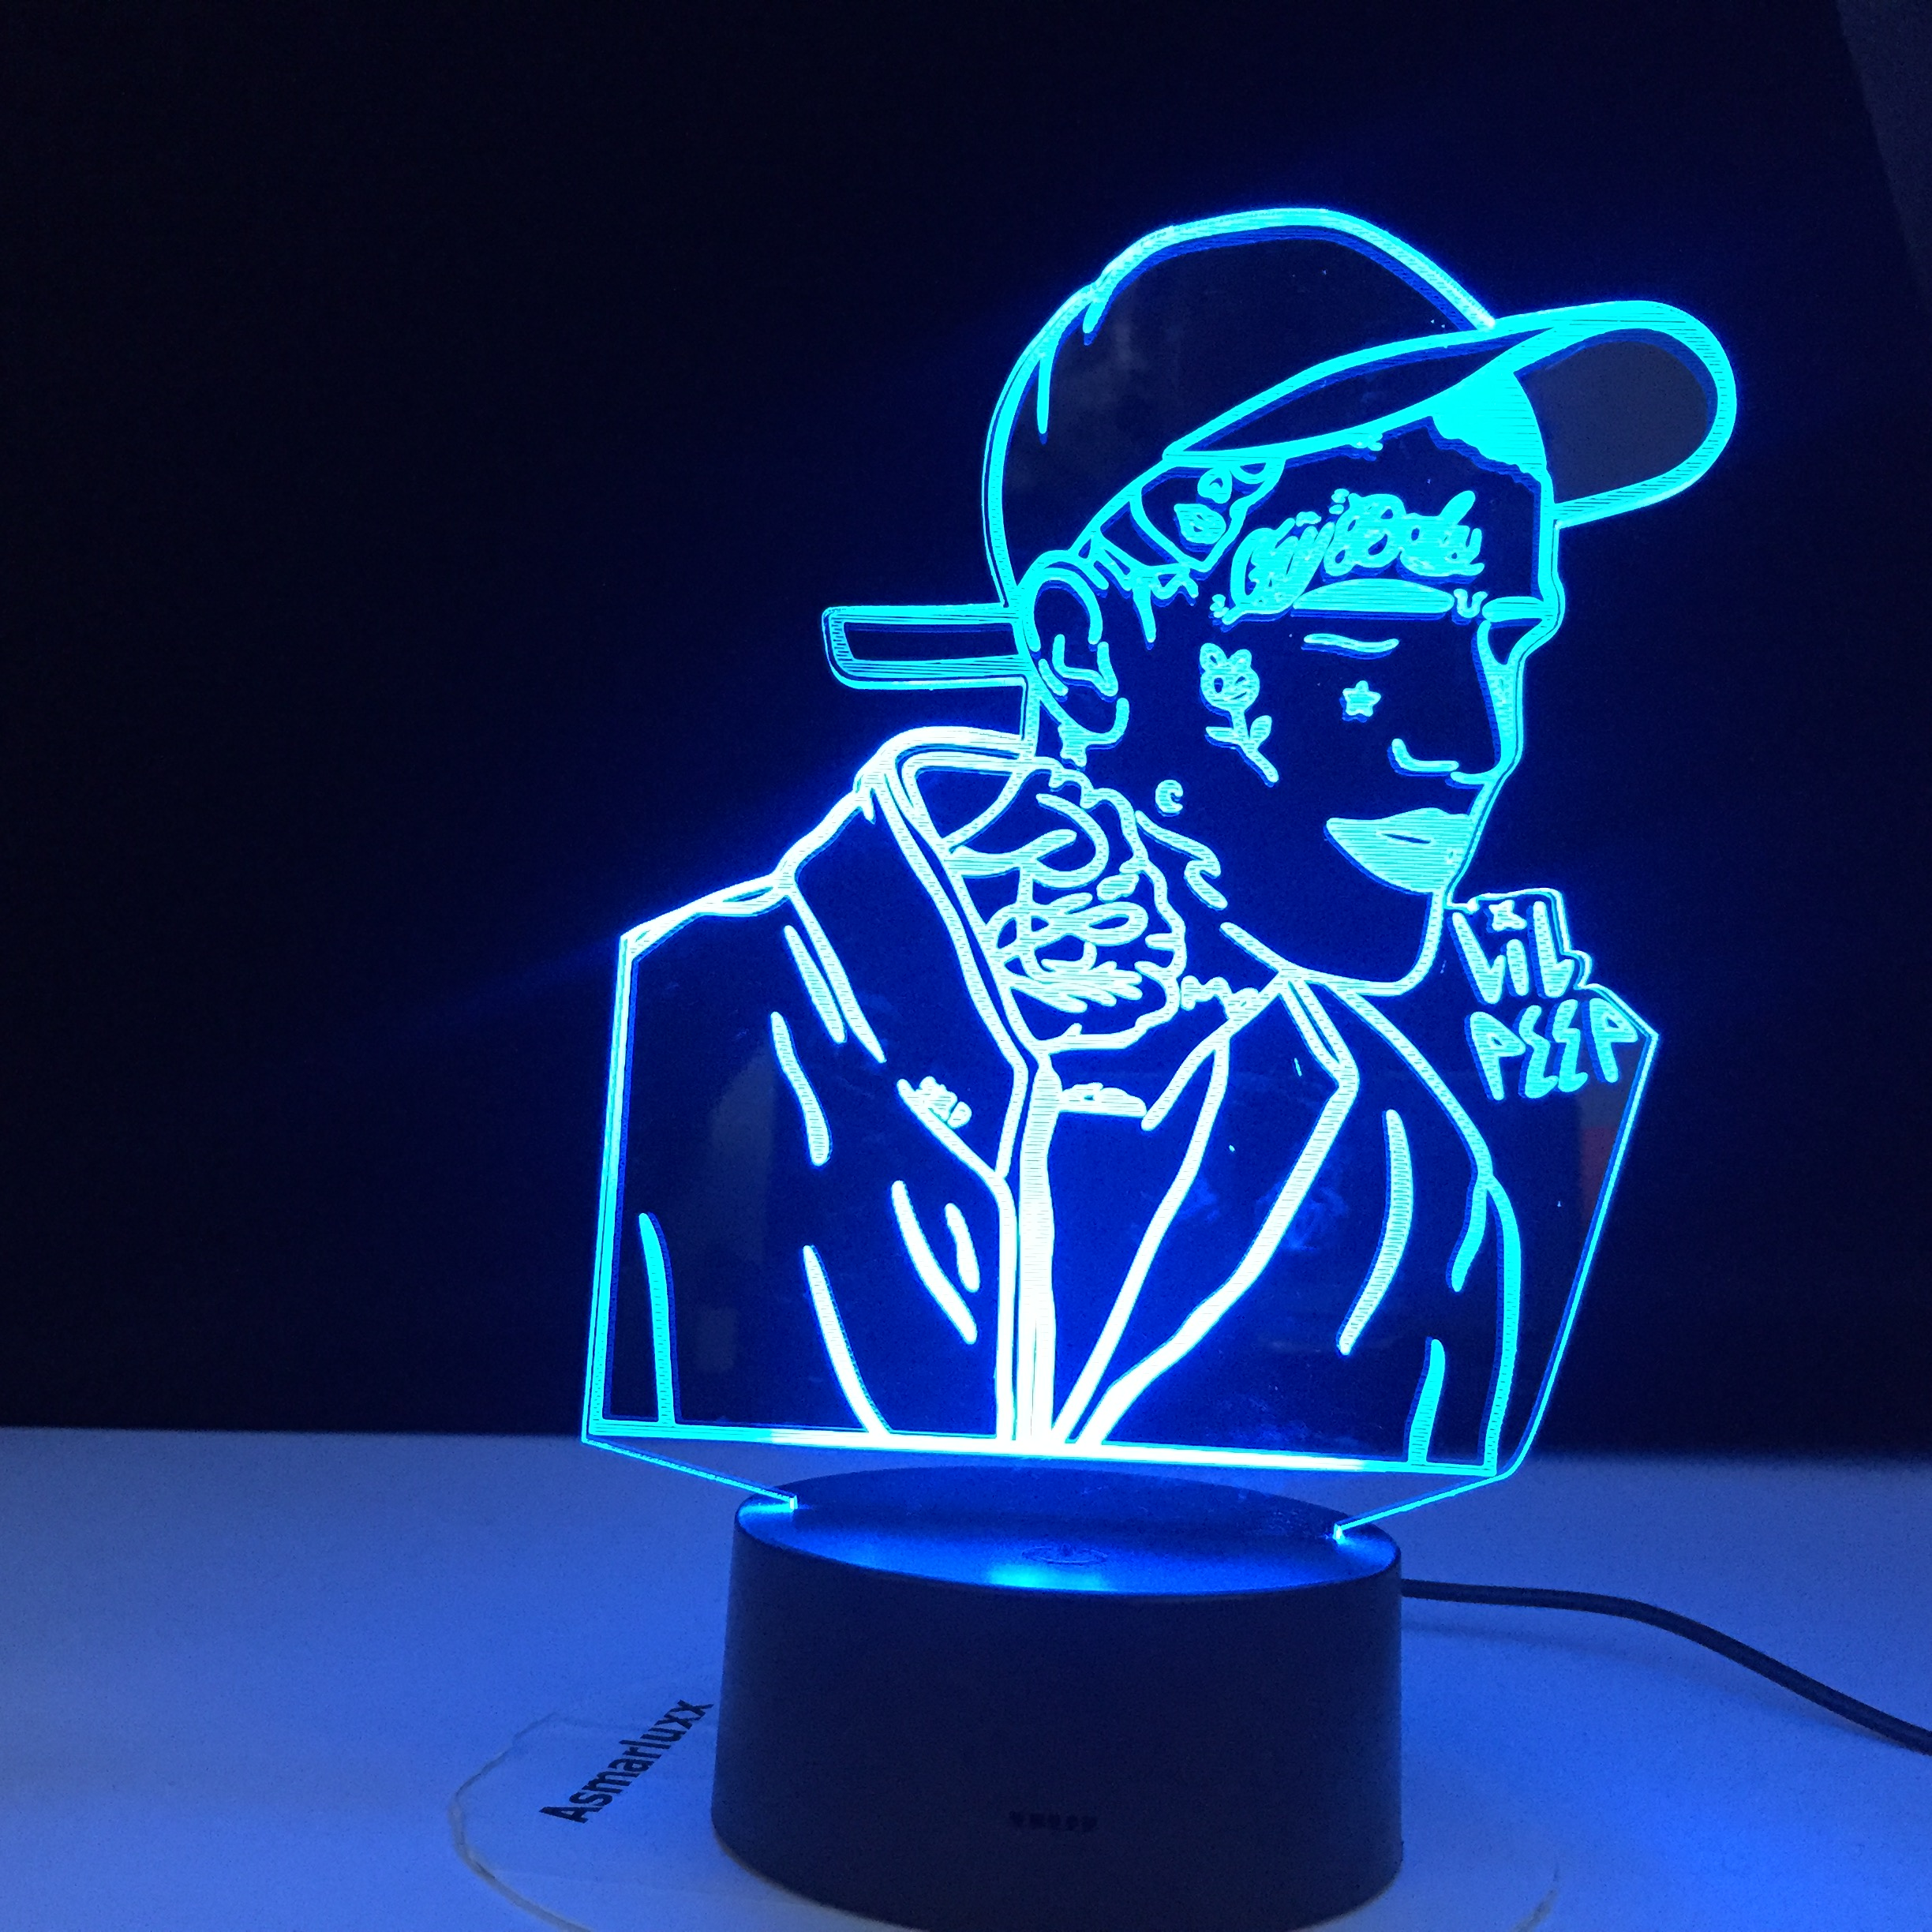 Permalink to Lil Peep American Rapper 3D Led Night Light for Home Decoration Colorful Celebrity Birthday Party Nightlight Gift for Fans